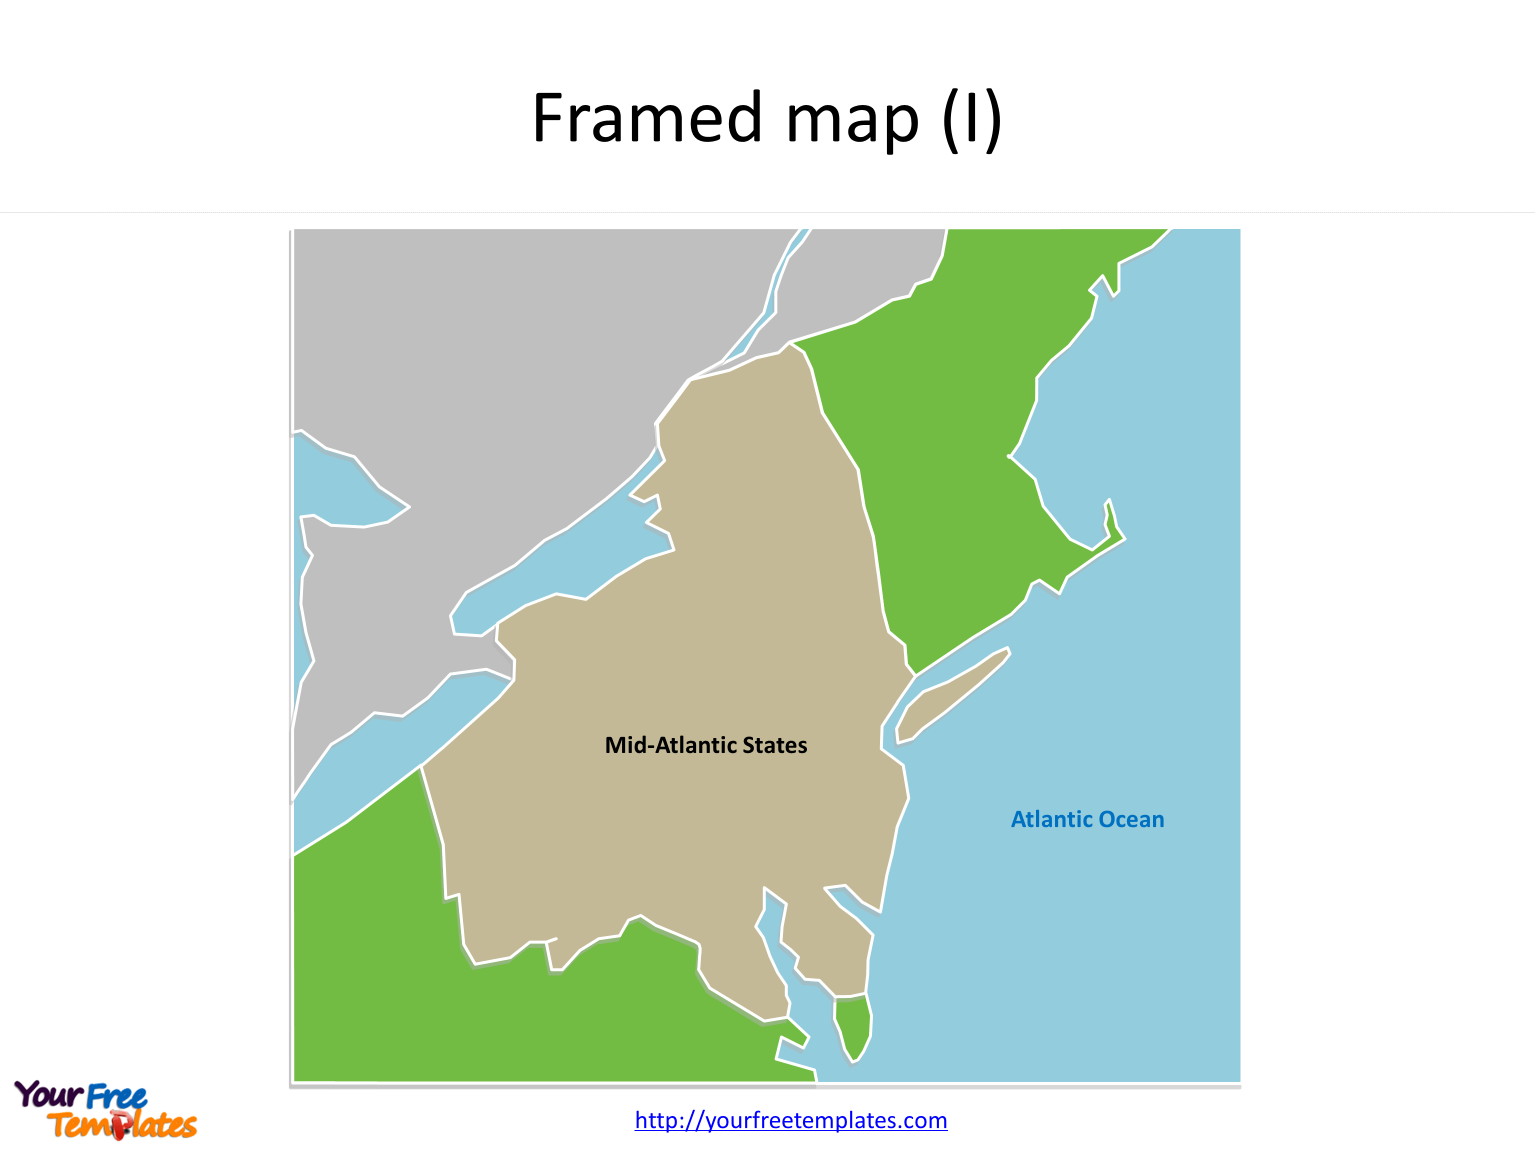 US map Framed Outline map for Mid Atlantic States on the US maps PowerPoint templates